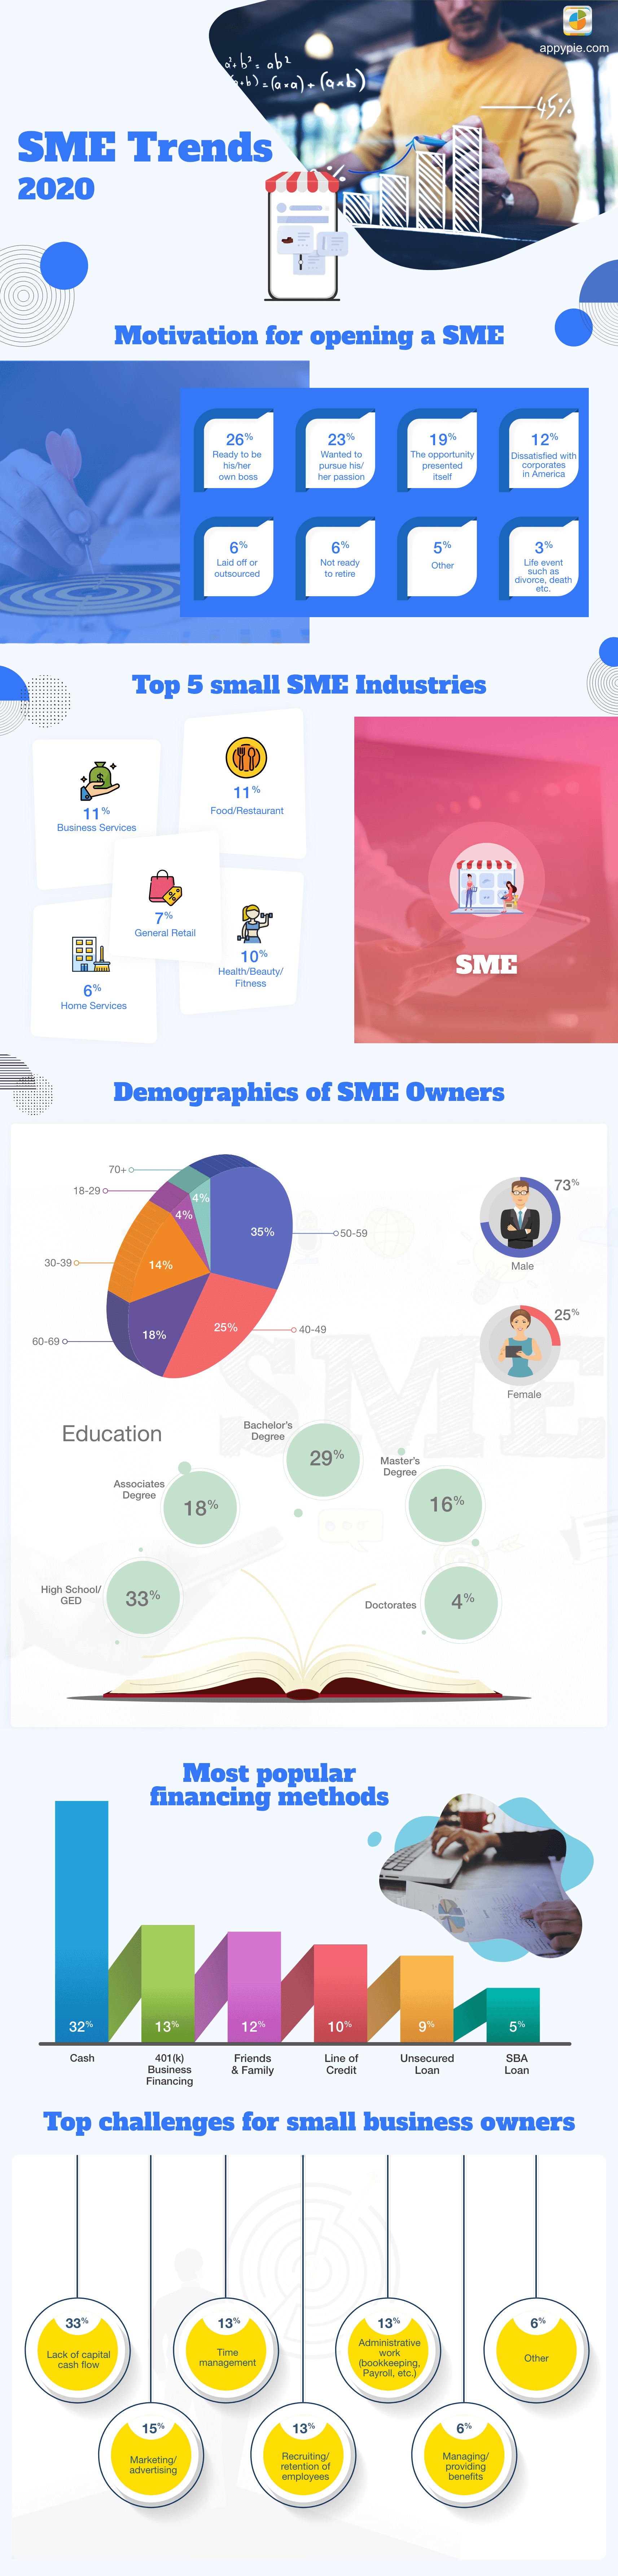 What is SME?